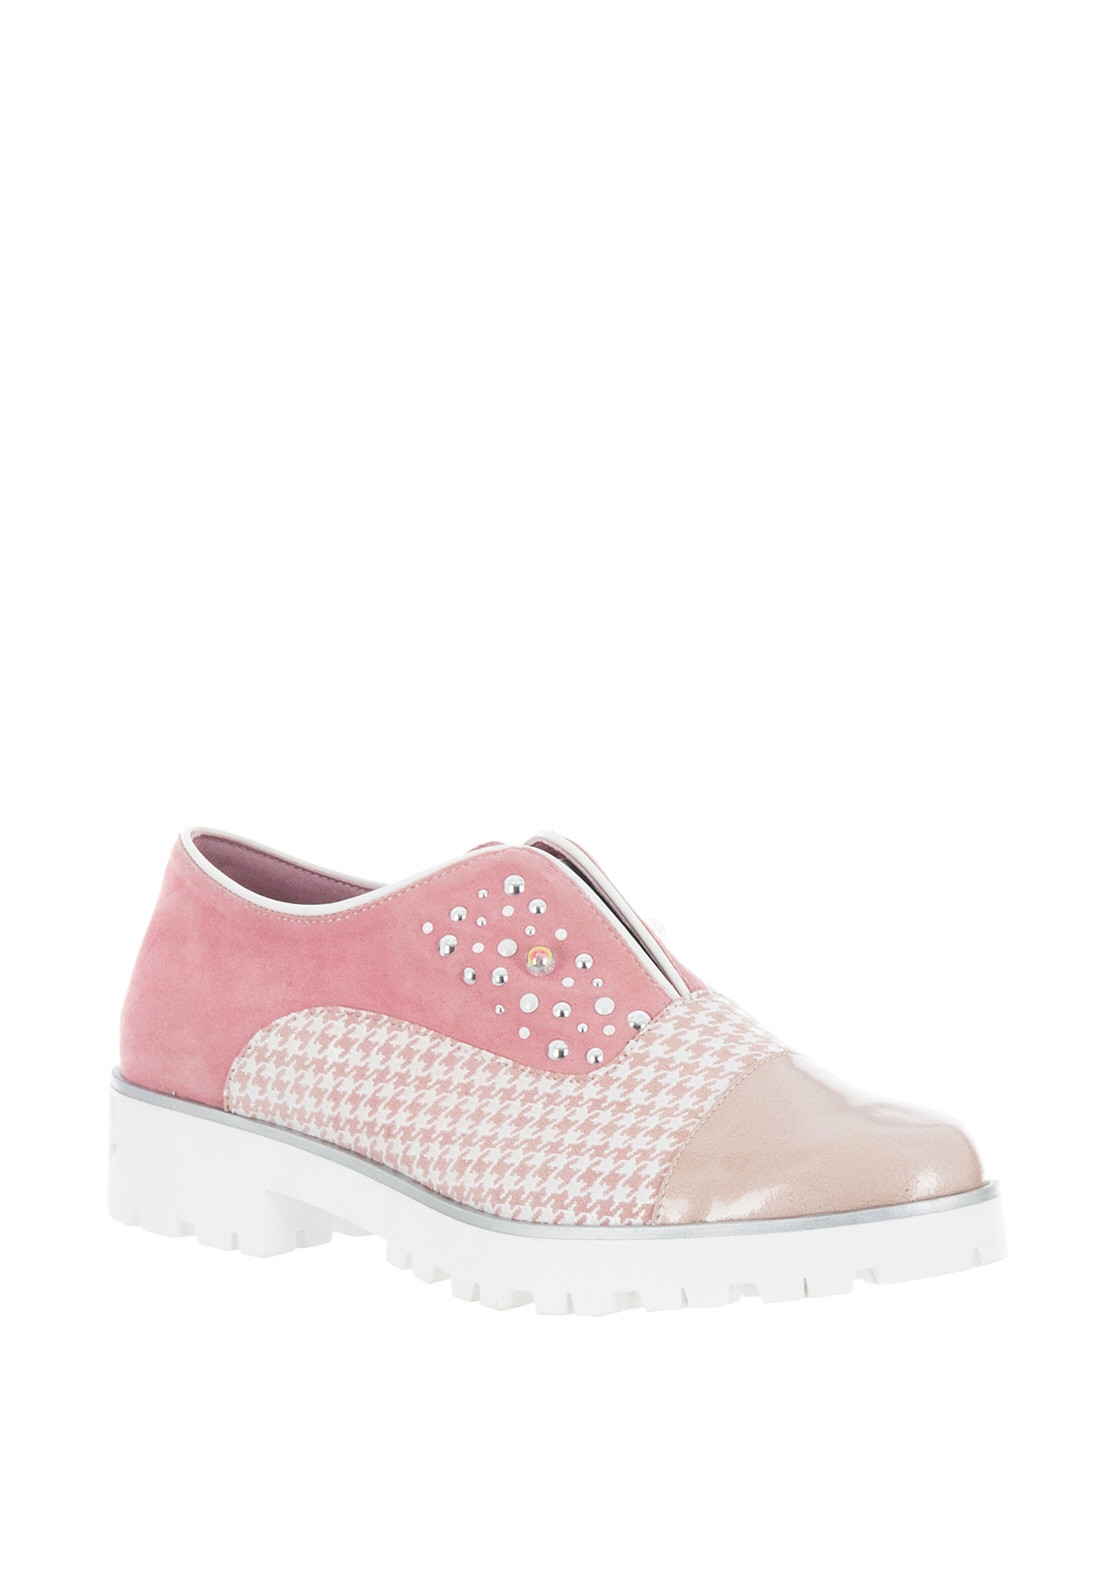 Maria Leon Leather Stud Houndtooth Loafers, Pink